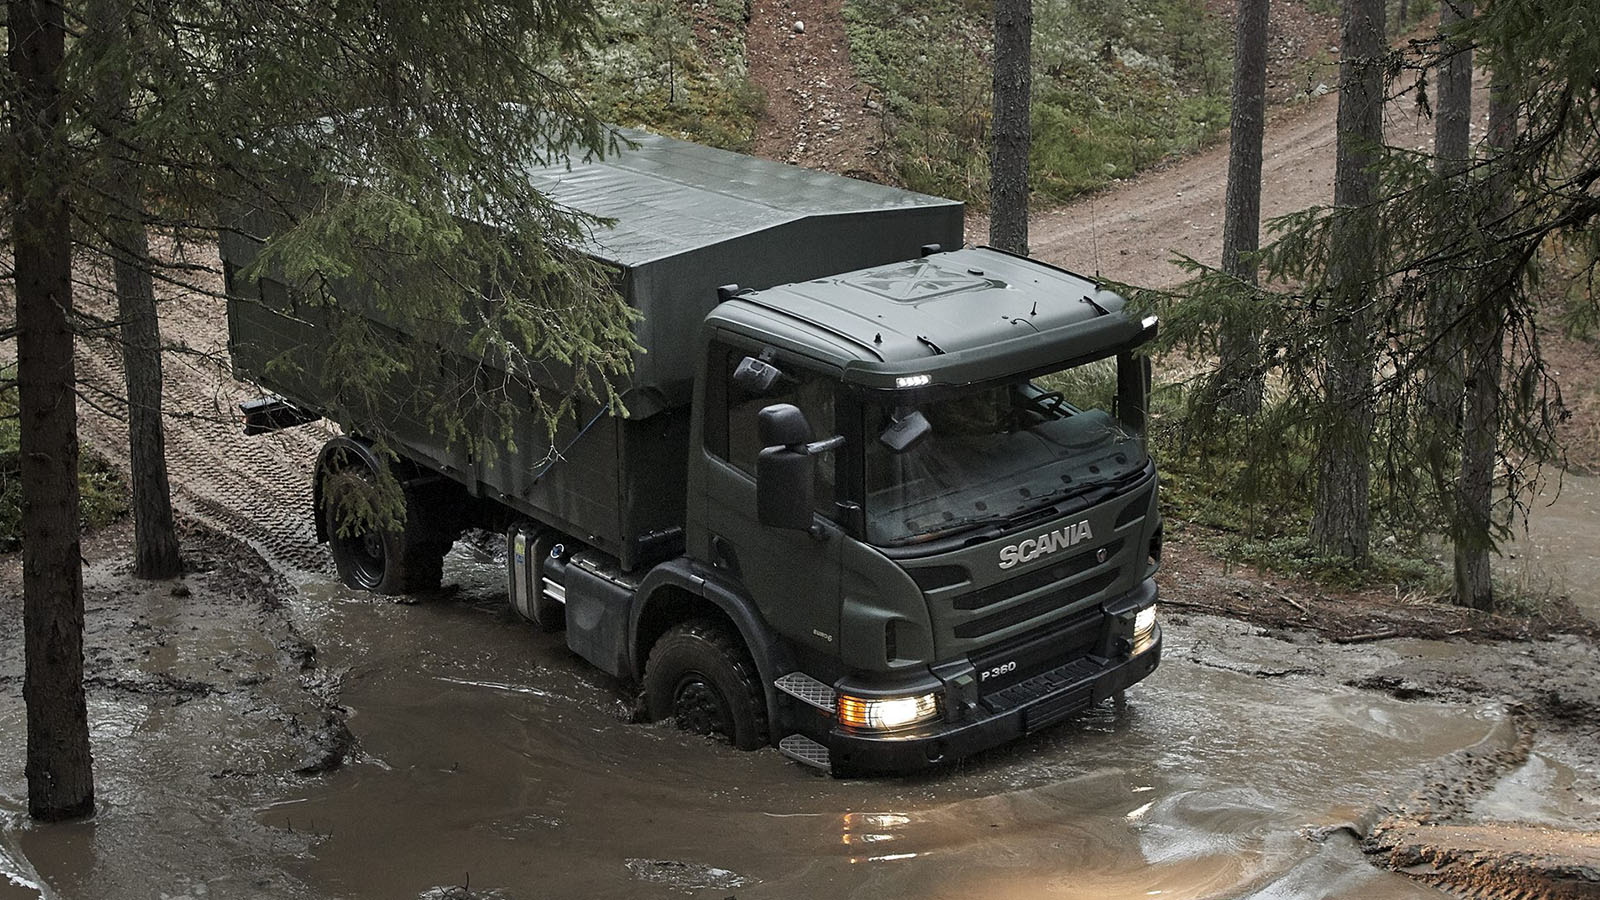 Scania P 360 CB4x4 general cargo flatbed with container locks (Scania)